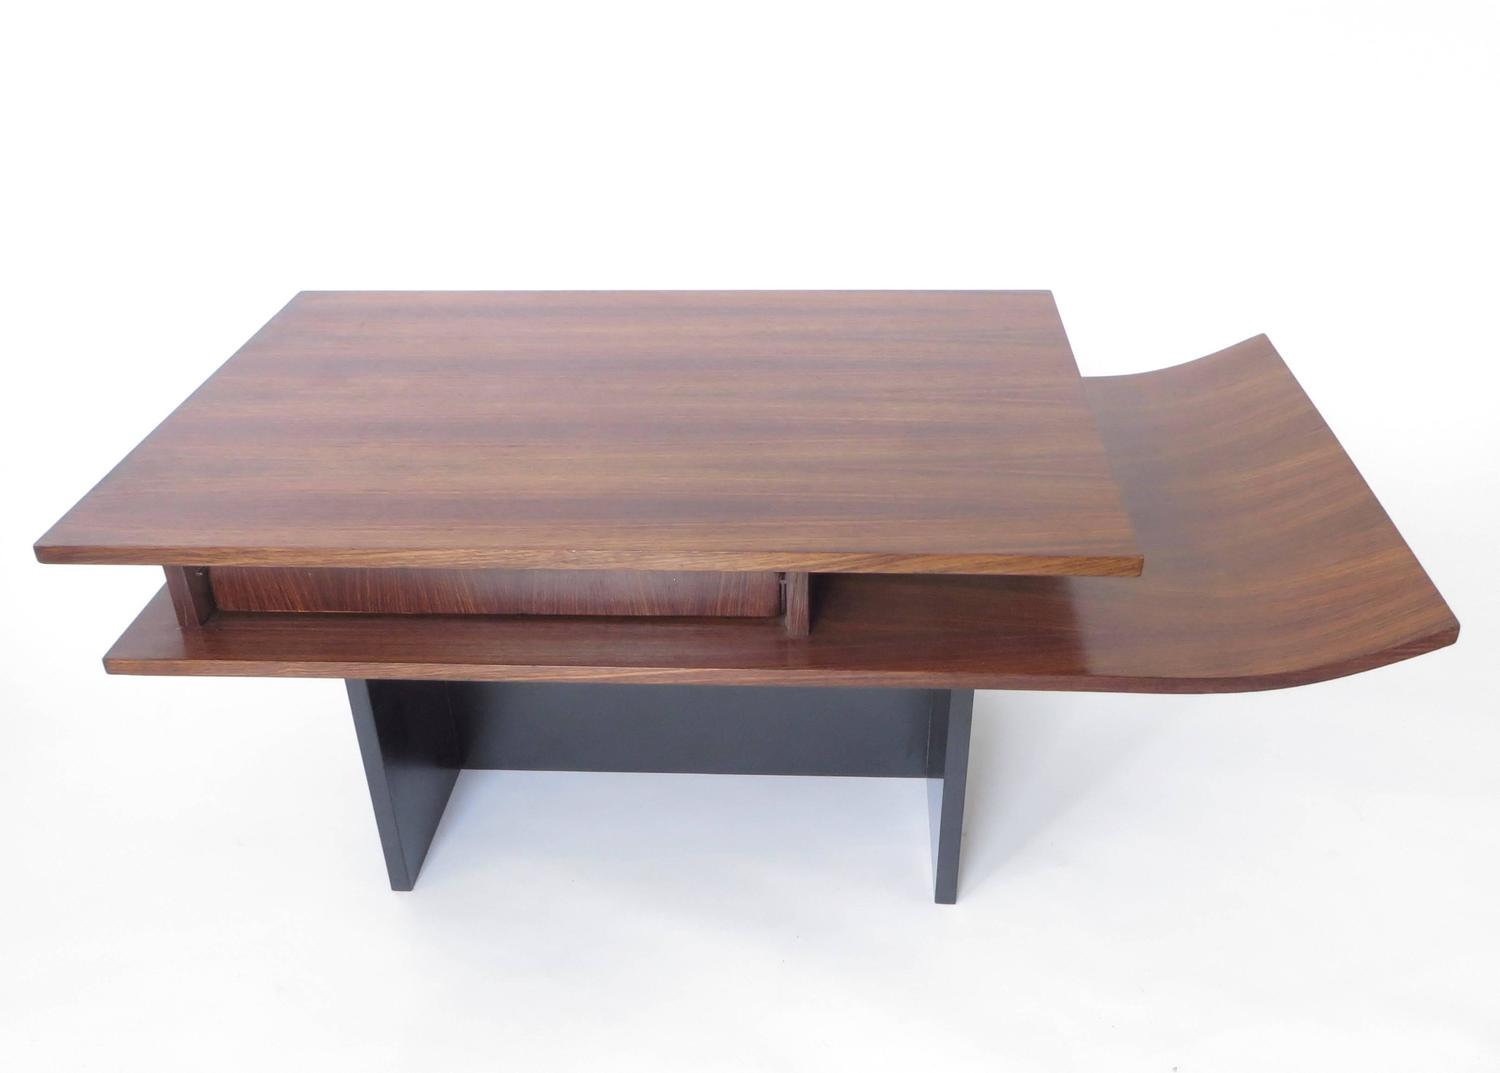 Italian Two Level Rosewood Coffee Table With One Drawer On Black Laminate Base For Sale At 1stdibs